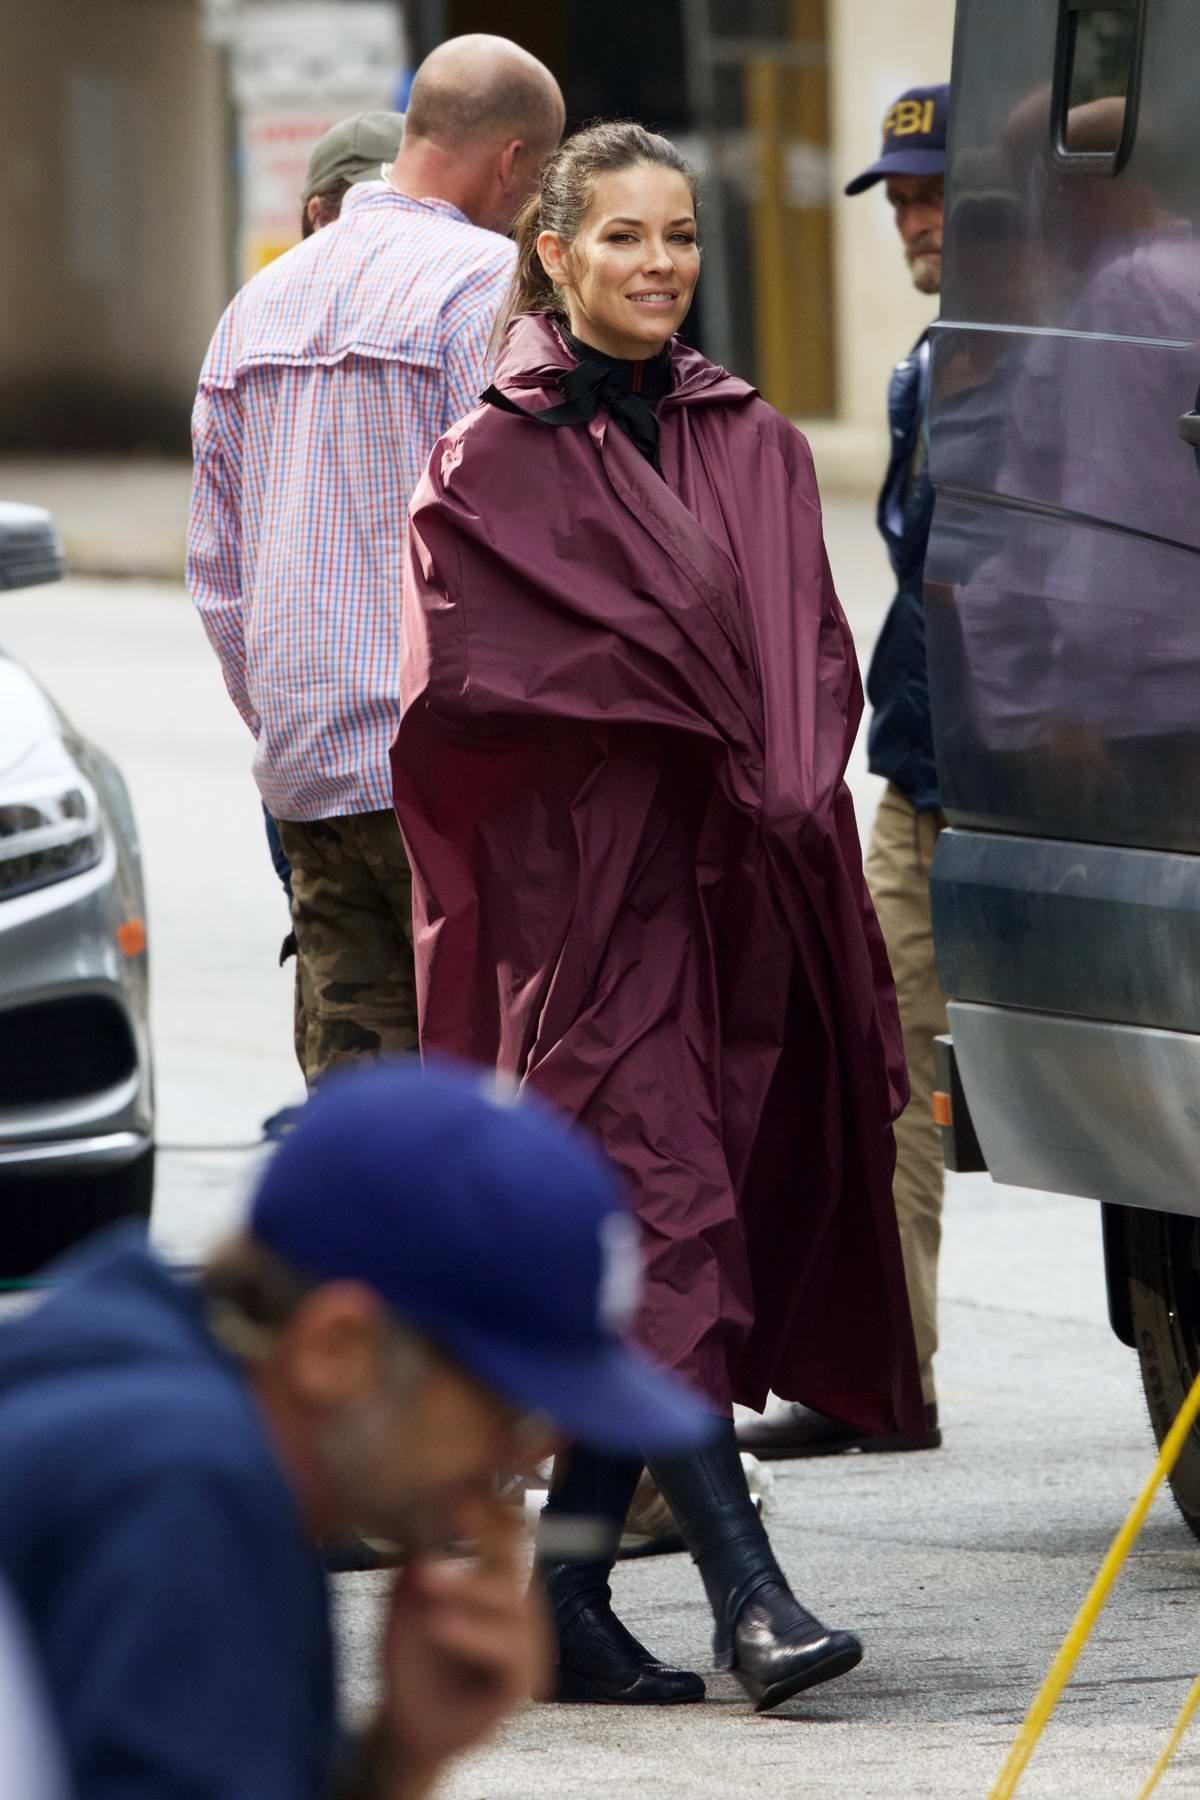 Evangeline Lilly arrives in full cape for filming 'Ant-Man and the Wasp' in Atlanta, Georgia